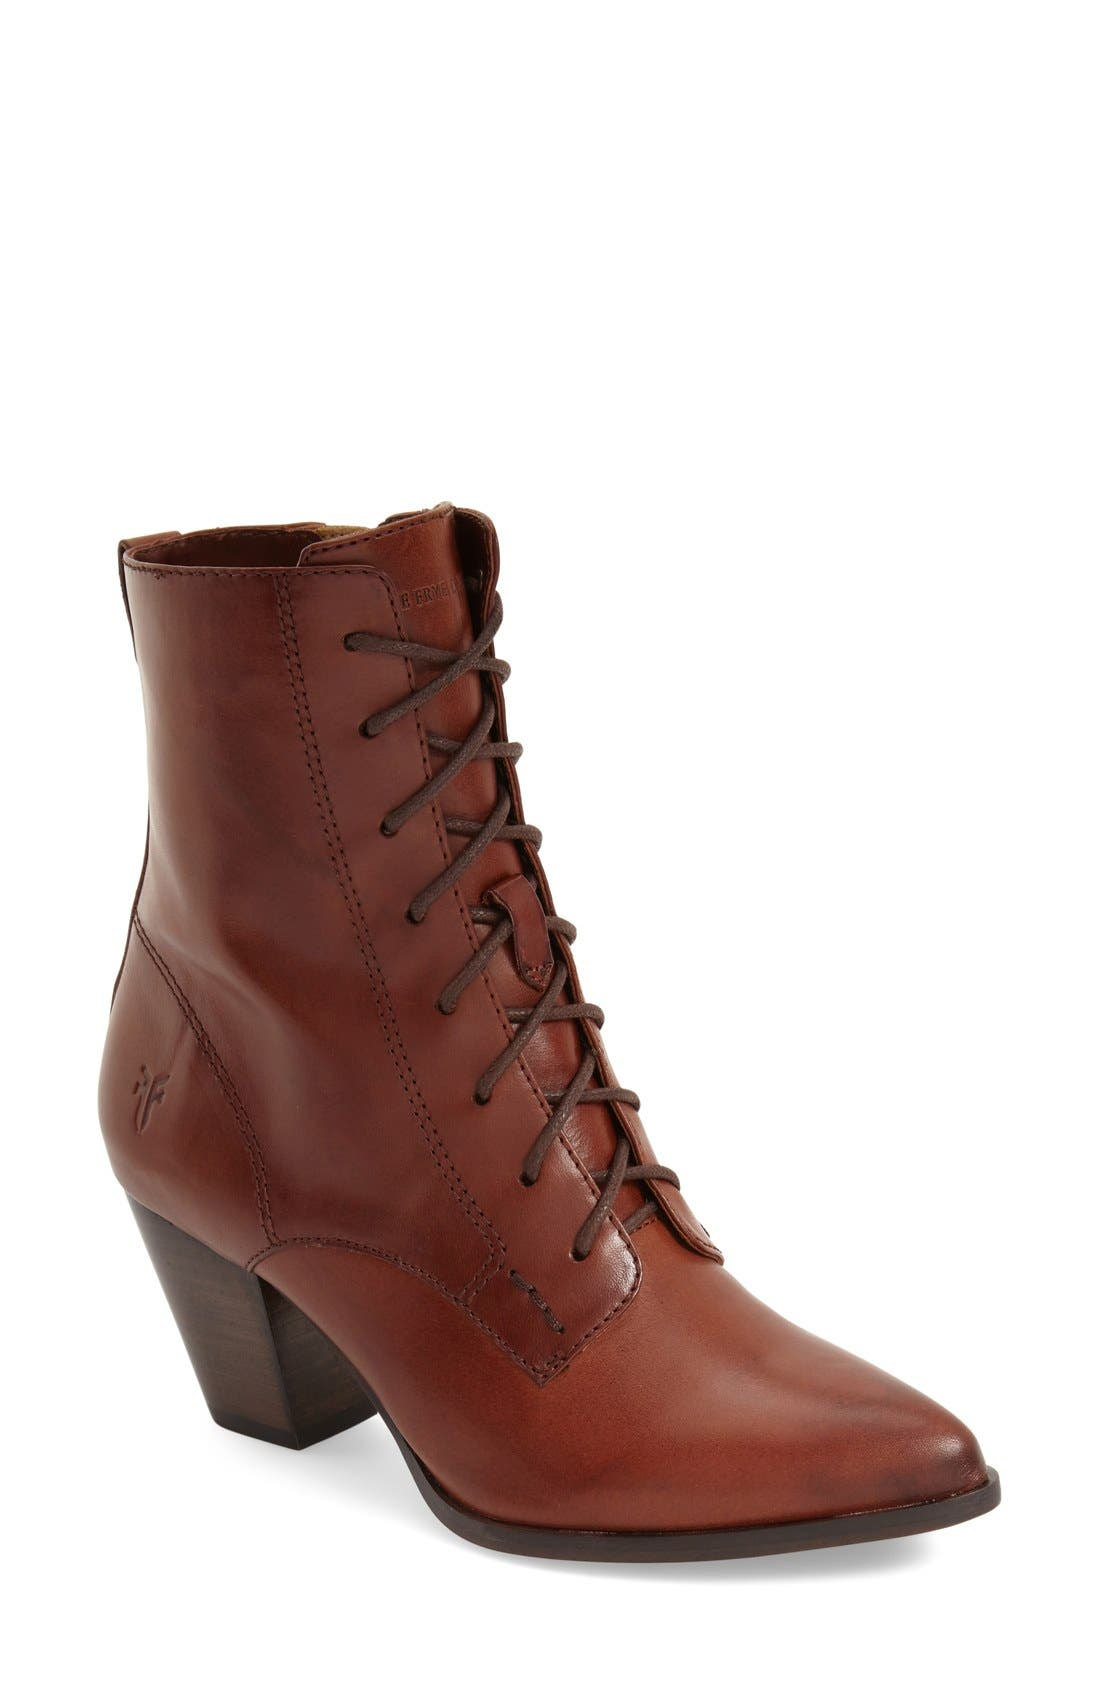 Alternate Image 1 Selected - Frye 'Renee' Lace Up Boot (Women)